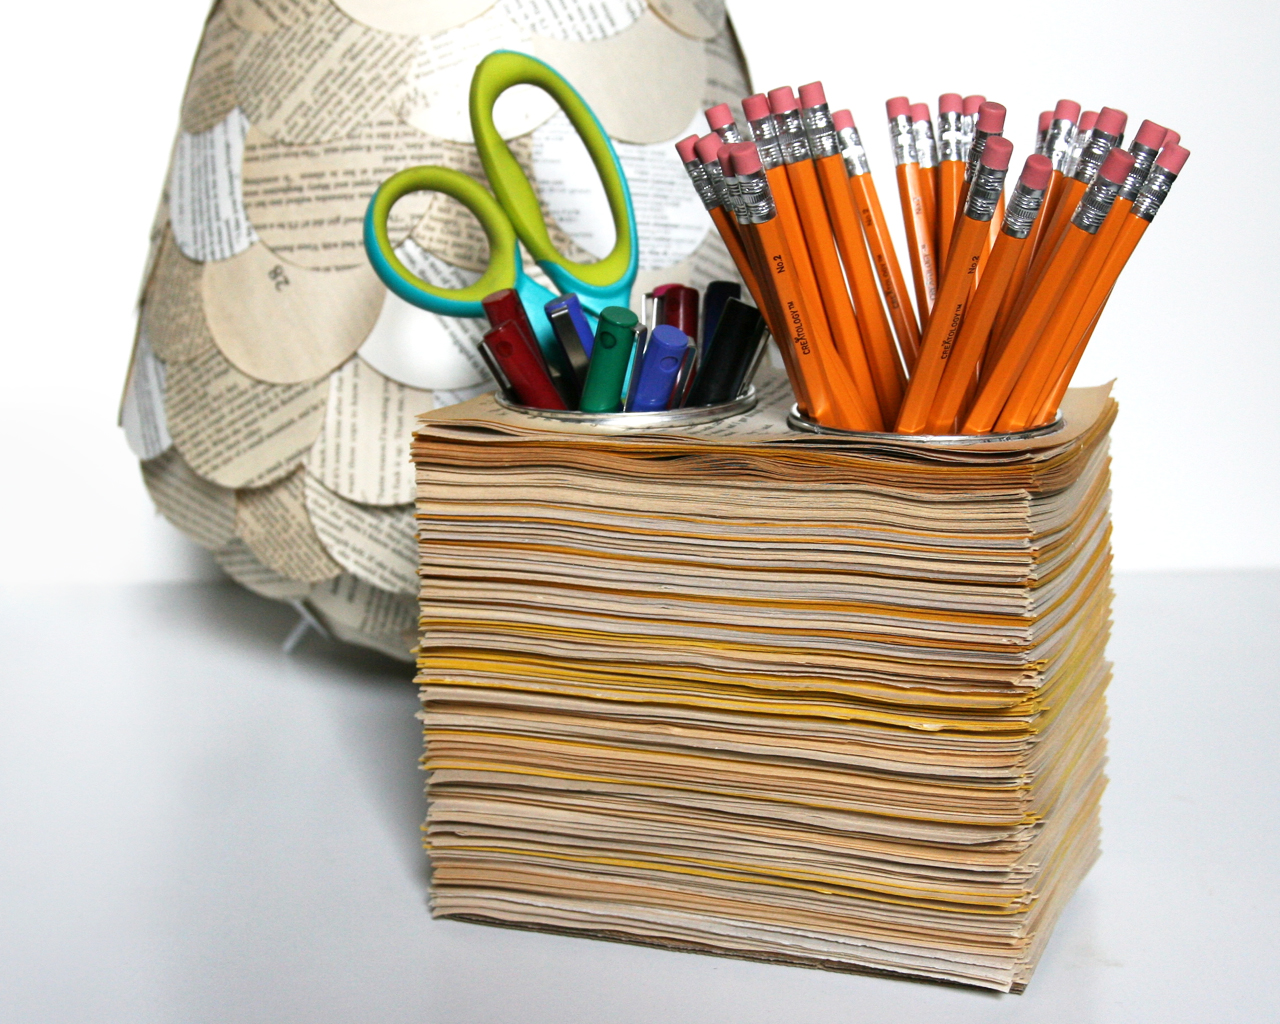 Homemade Pencil Holders Book Pages Pencil Cups The 3 R S Blog